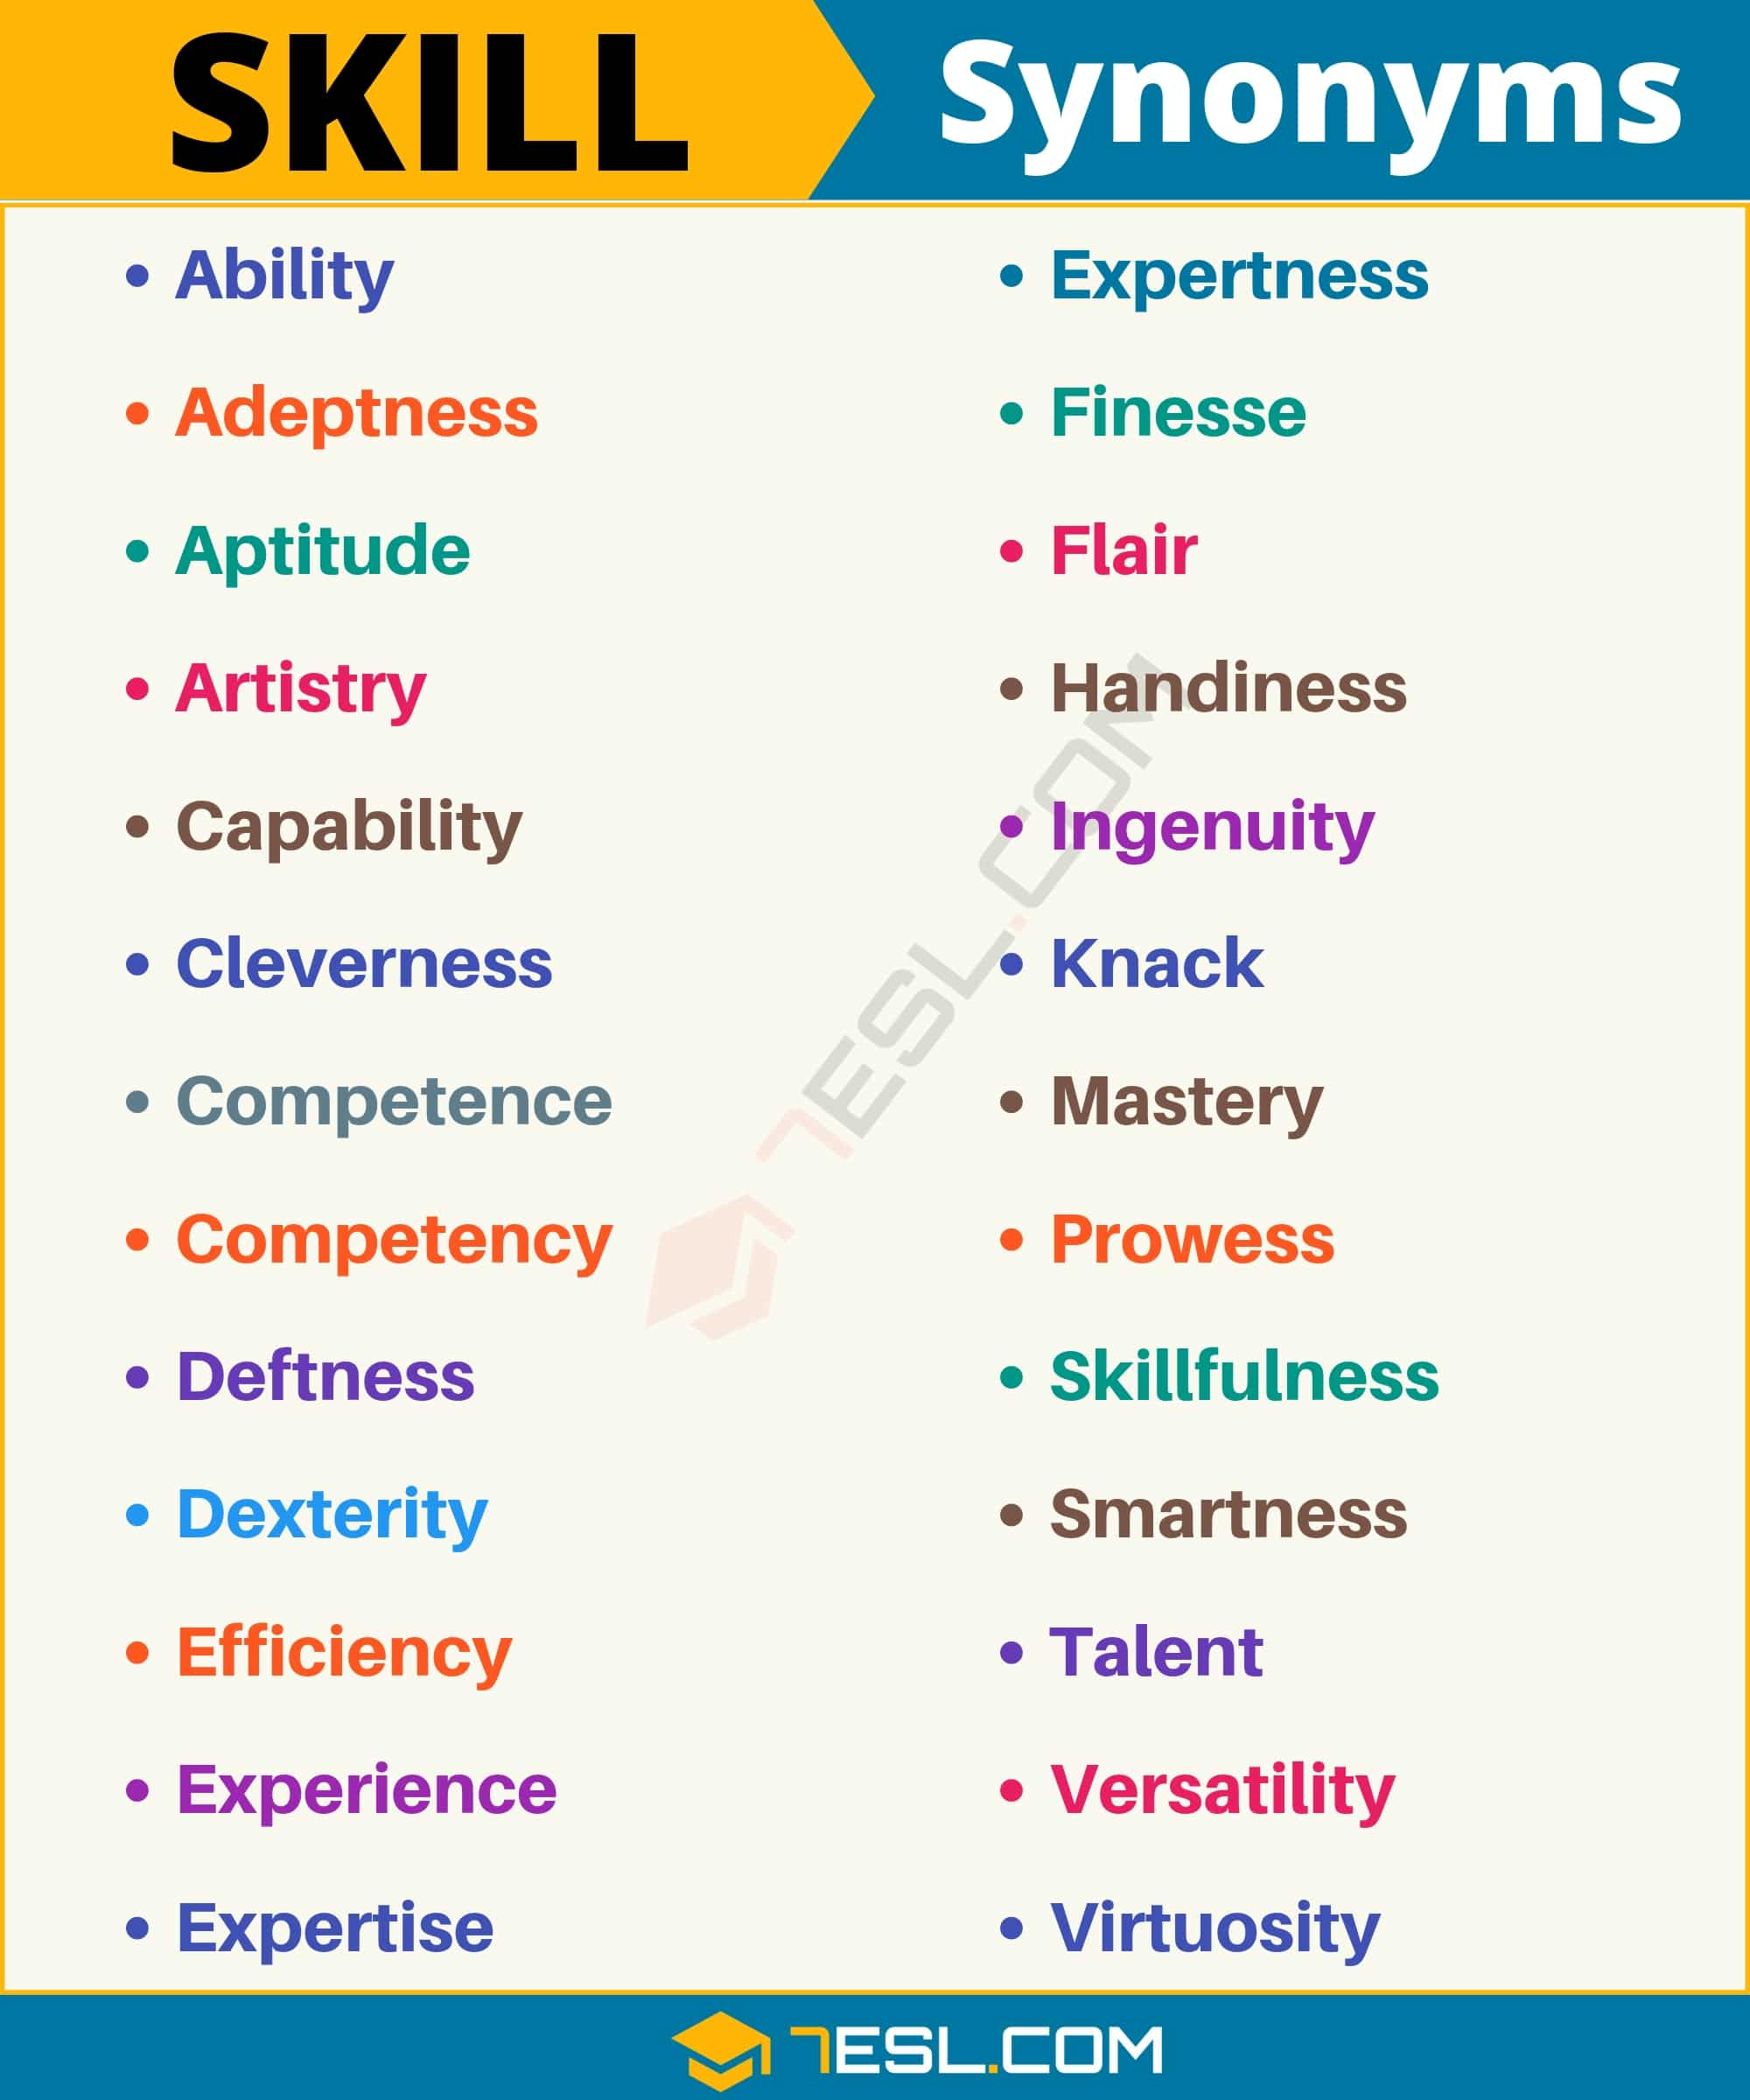 SKILL Synonym: List of 26 Synonyms for Skill with Useful Examples